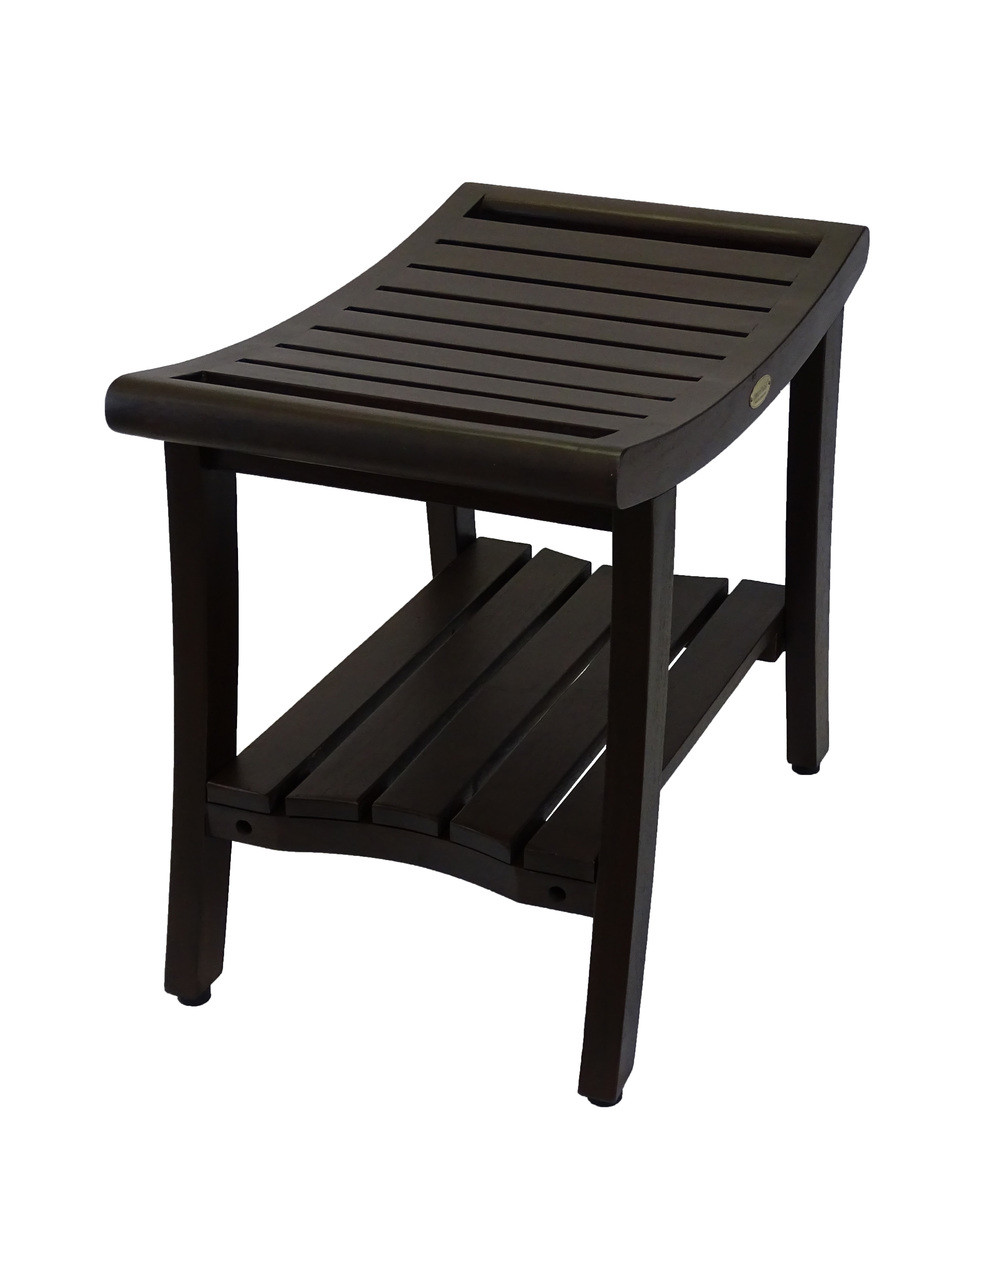 """DecoTeak Harmony 24"""" Teak Wood Shower Bench with Shelf and LiftAide Arms in Woodland Brown Finish"""